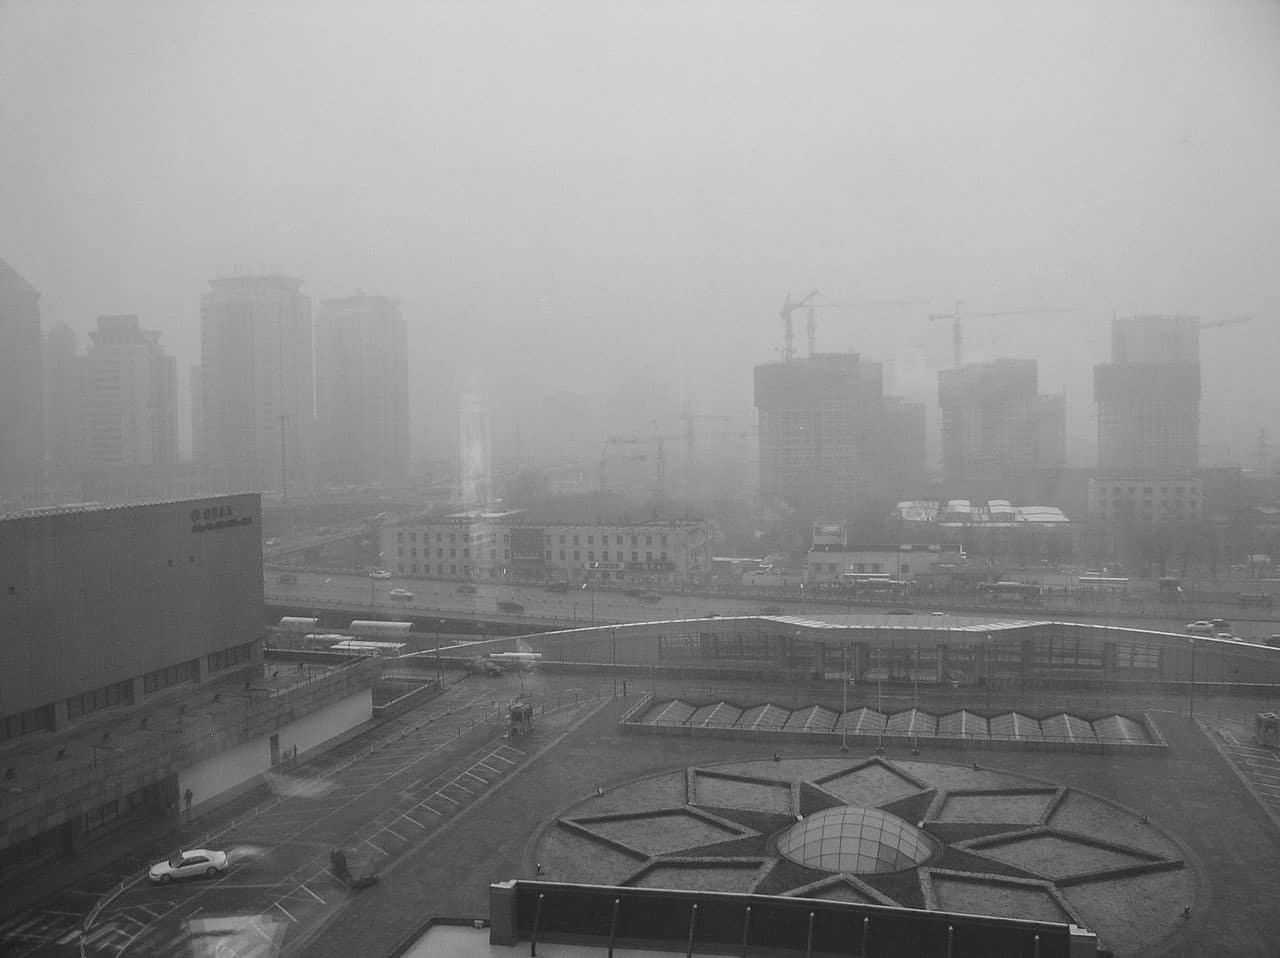 https://tiltnews.us/wp-content/uploads/2019/11/Beijing-pollution.jpg